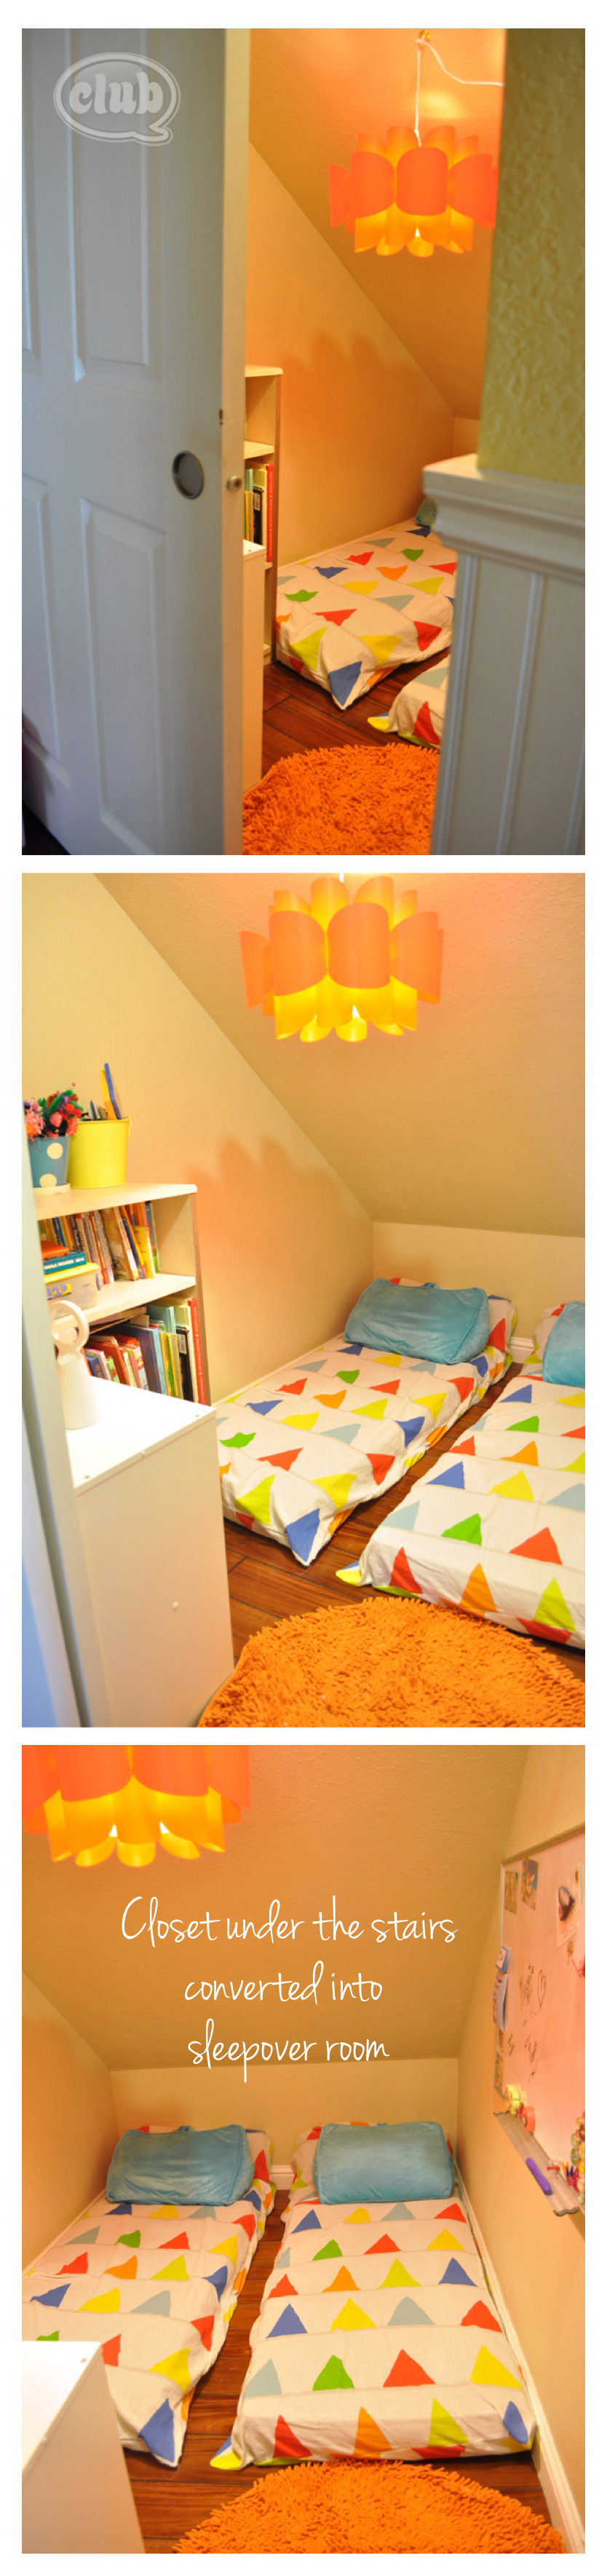 20 ideas to turn that boring closet into something wonderful What to do with an empty room in your house